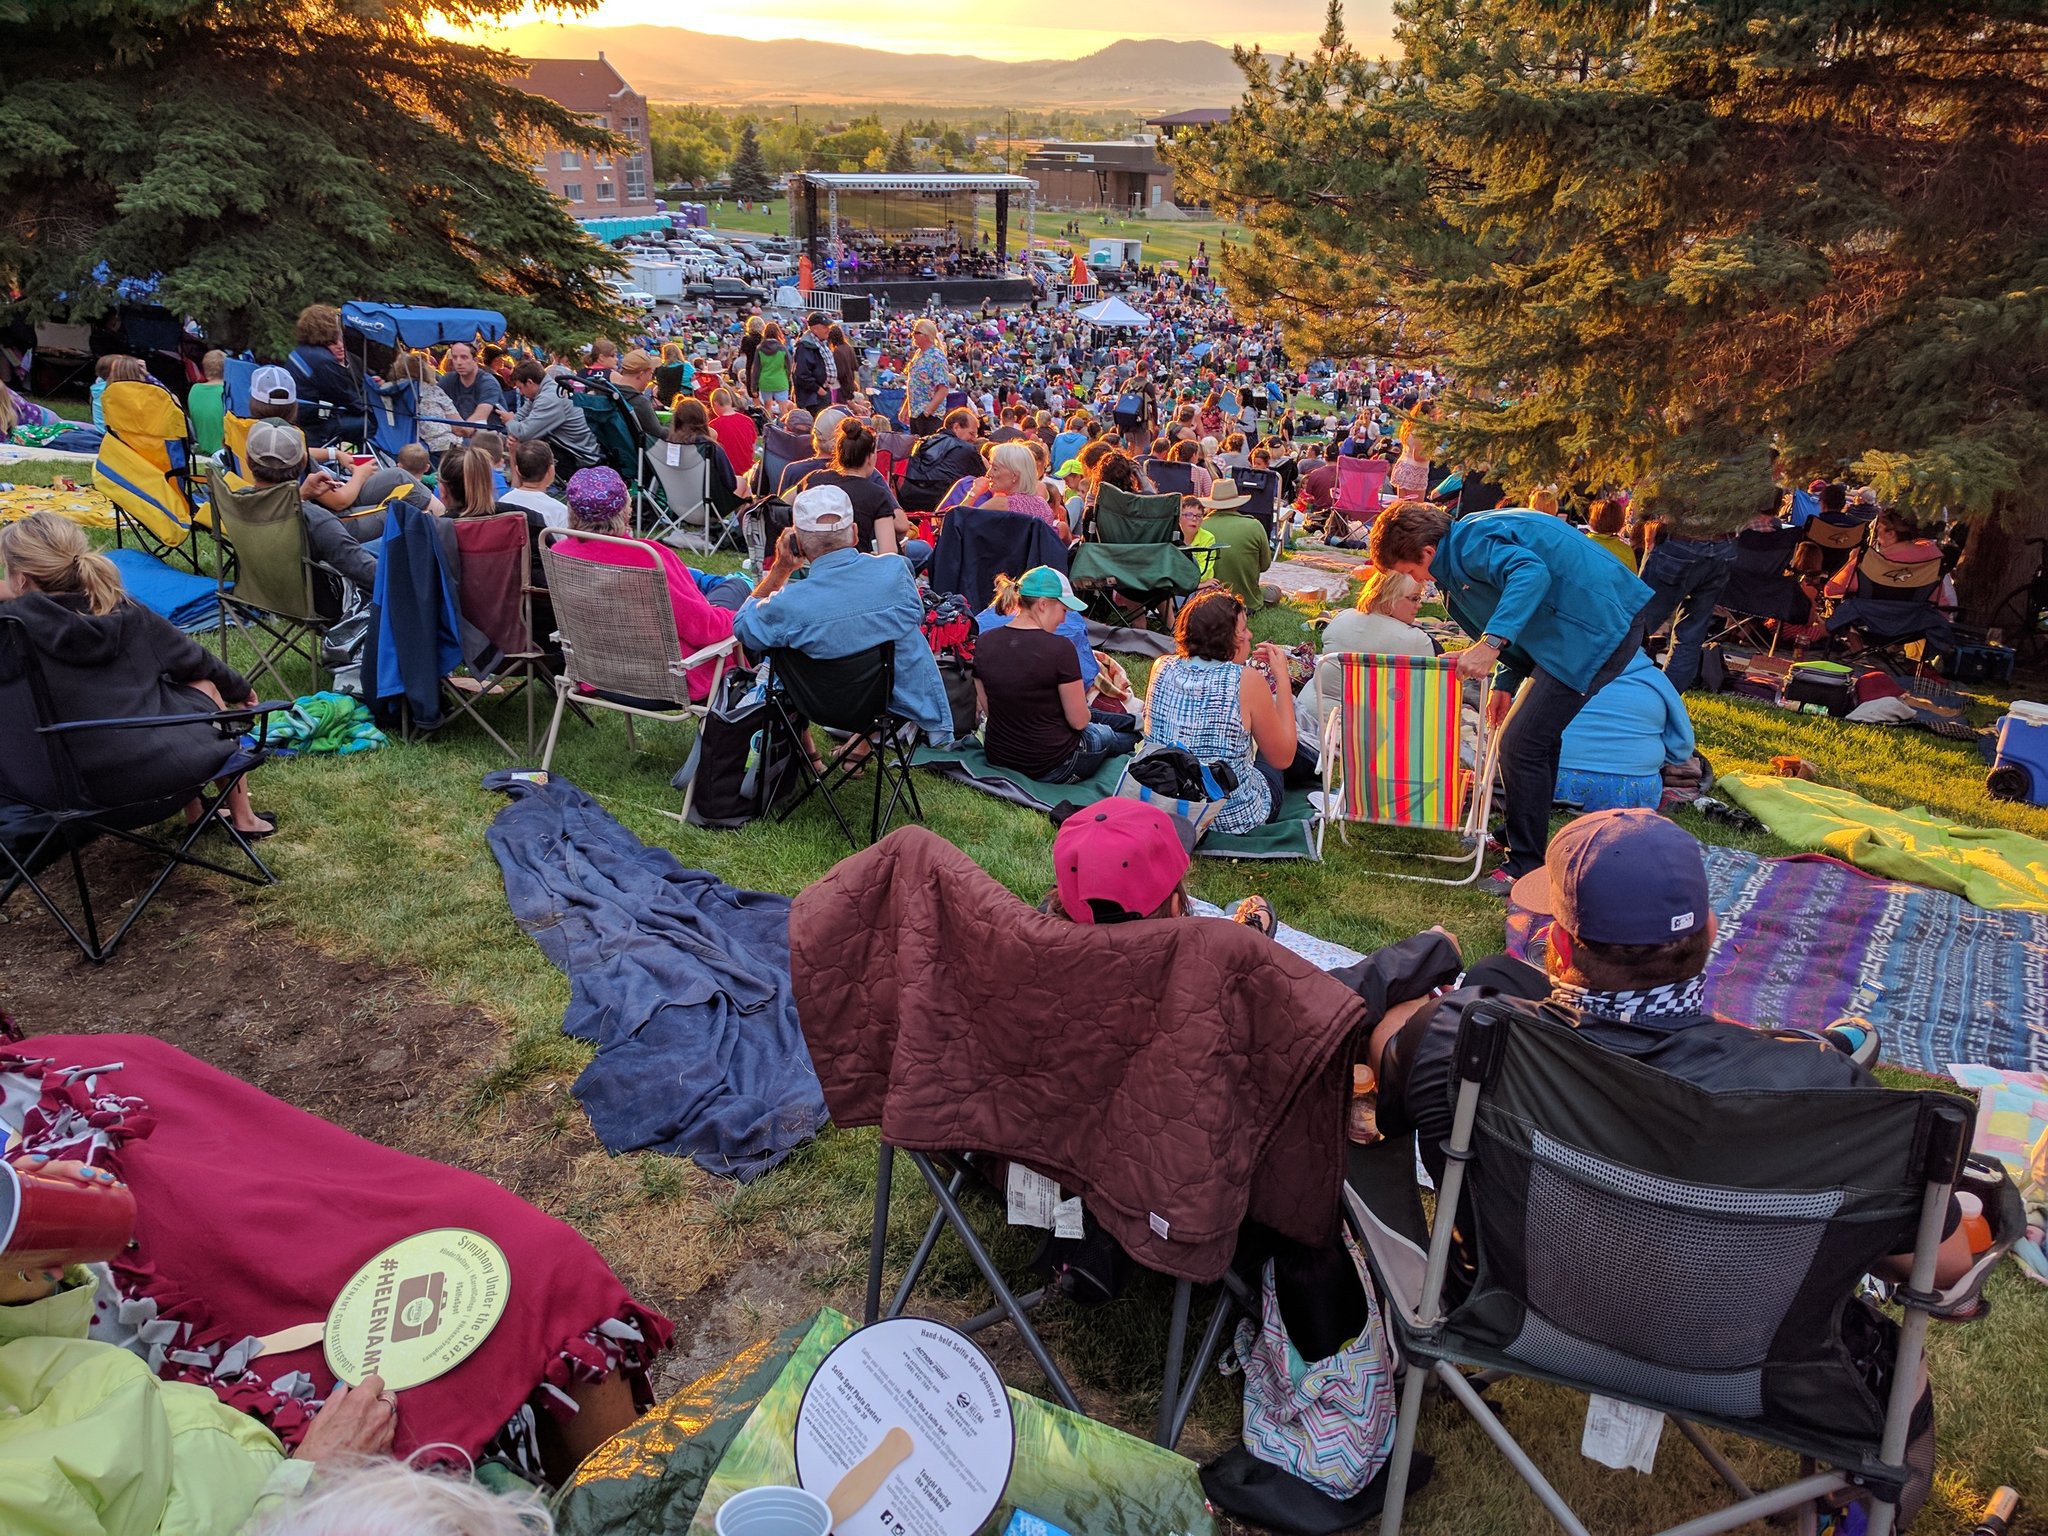 Montanans across Big Sky Country invited to the largest free summer event in Montana